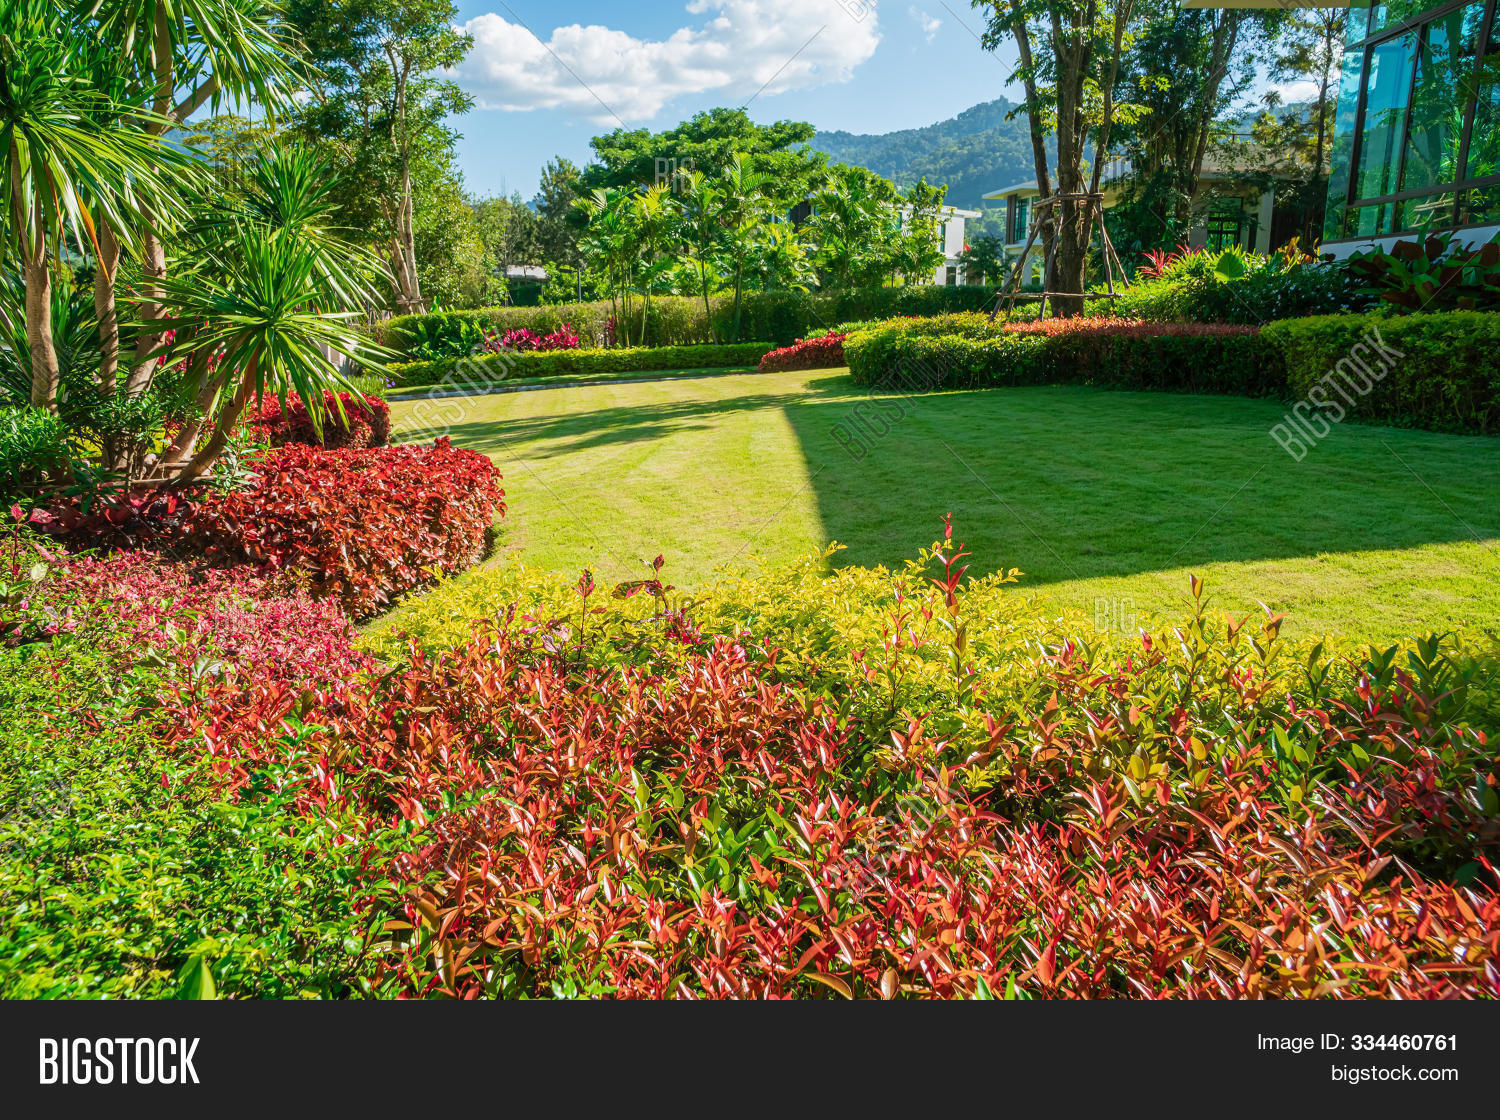 Green Lawns Front Image Photo Free Trial Bigstock